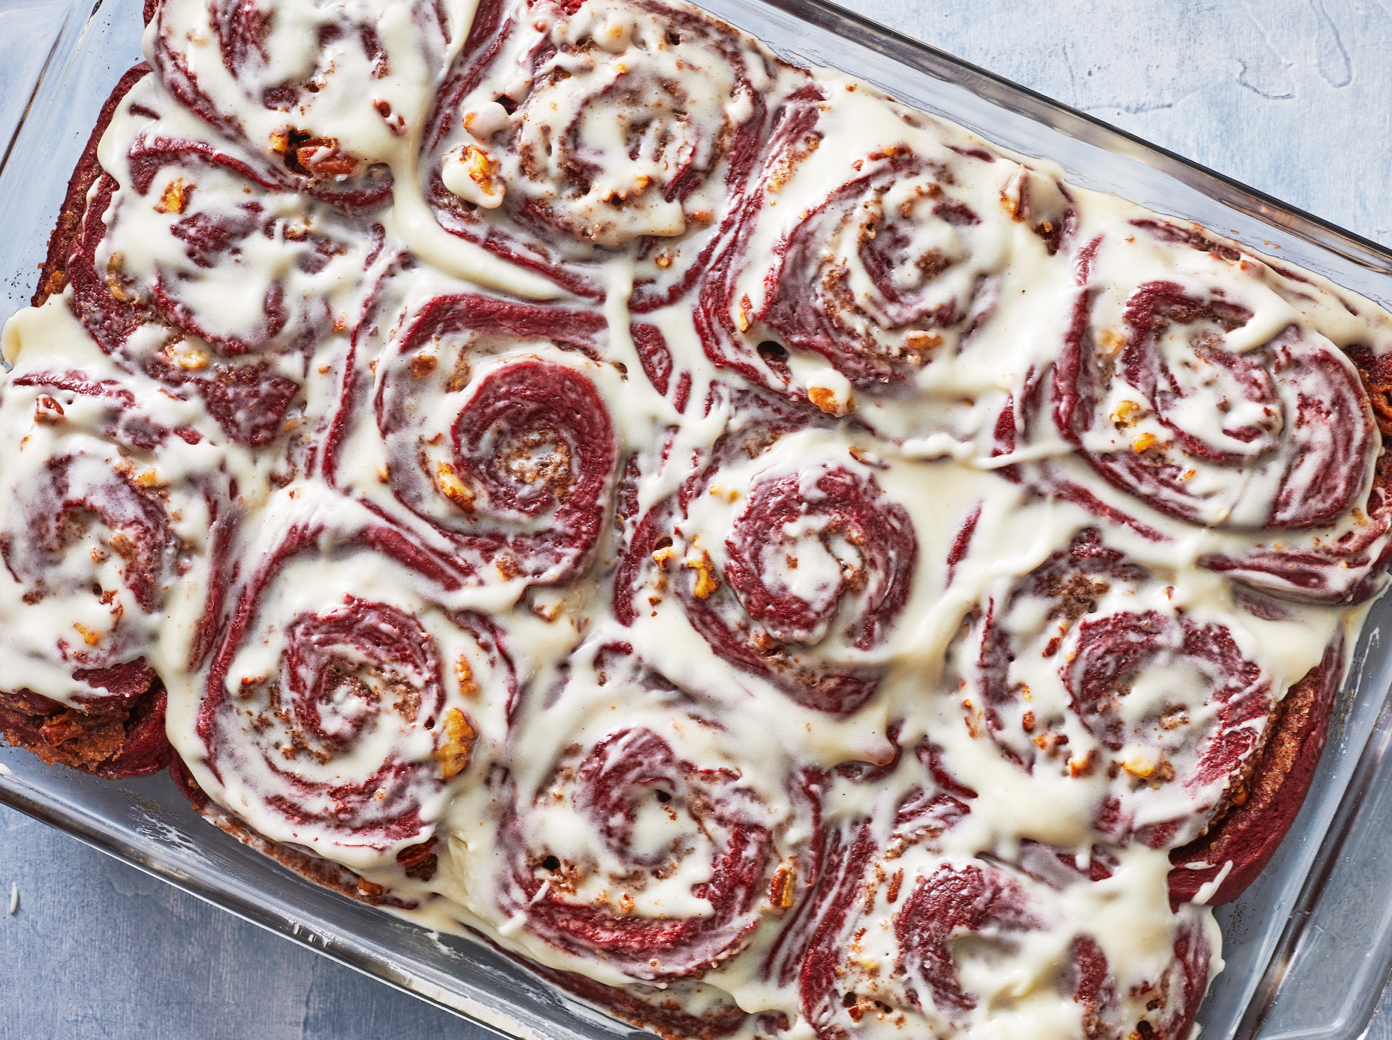 mr - Red Velvet Cinnamon Buns